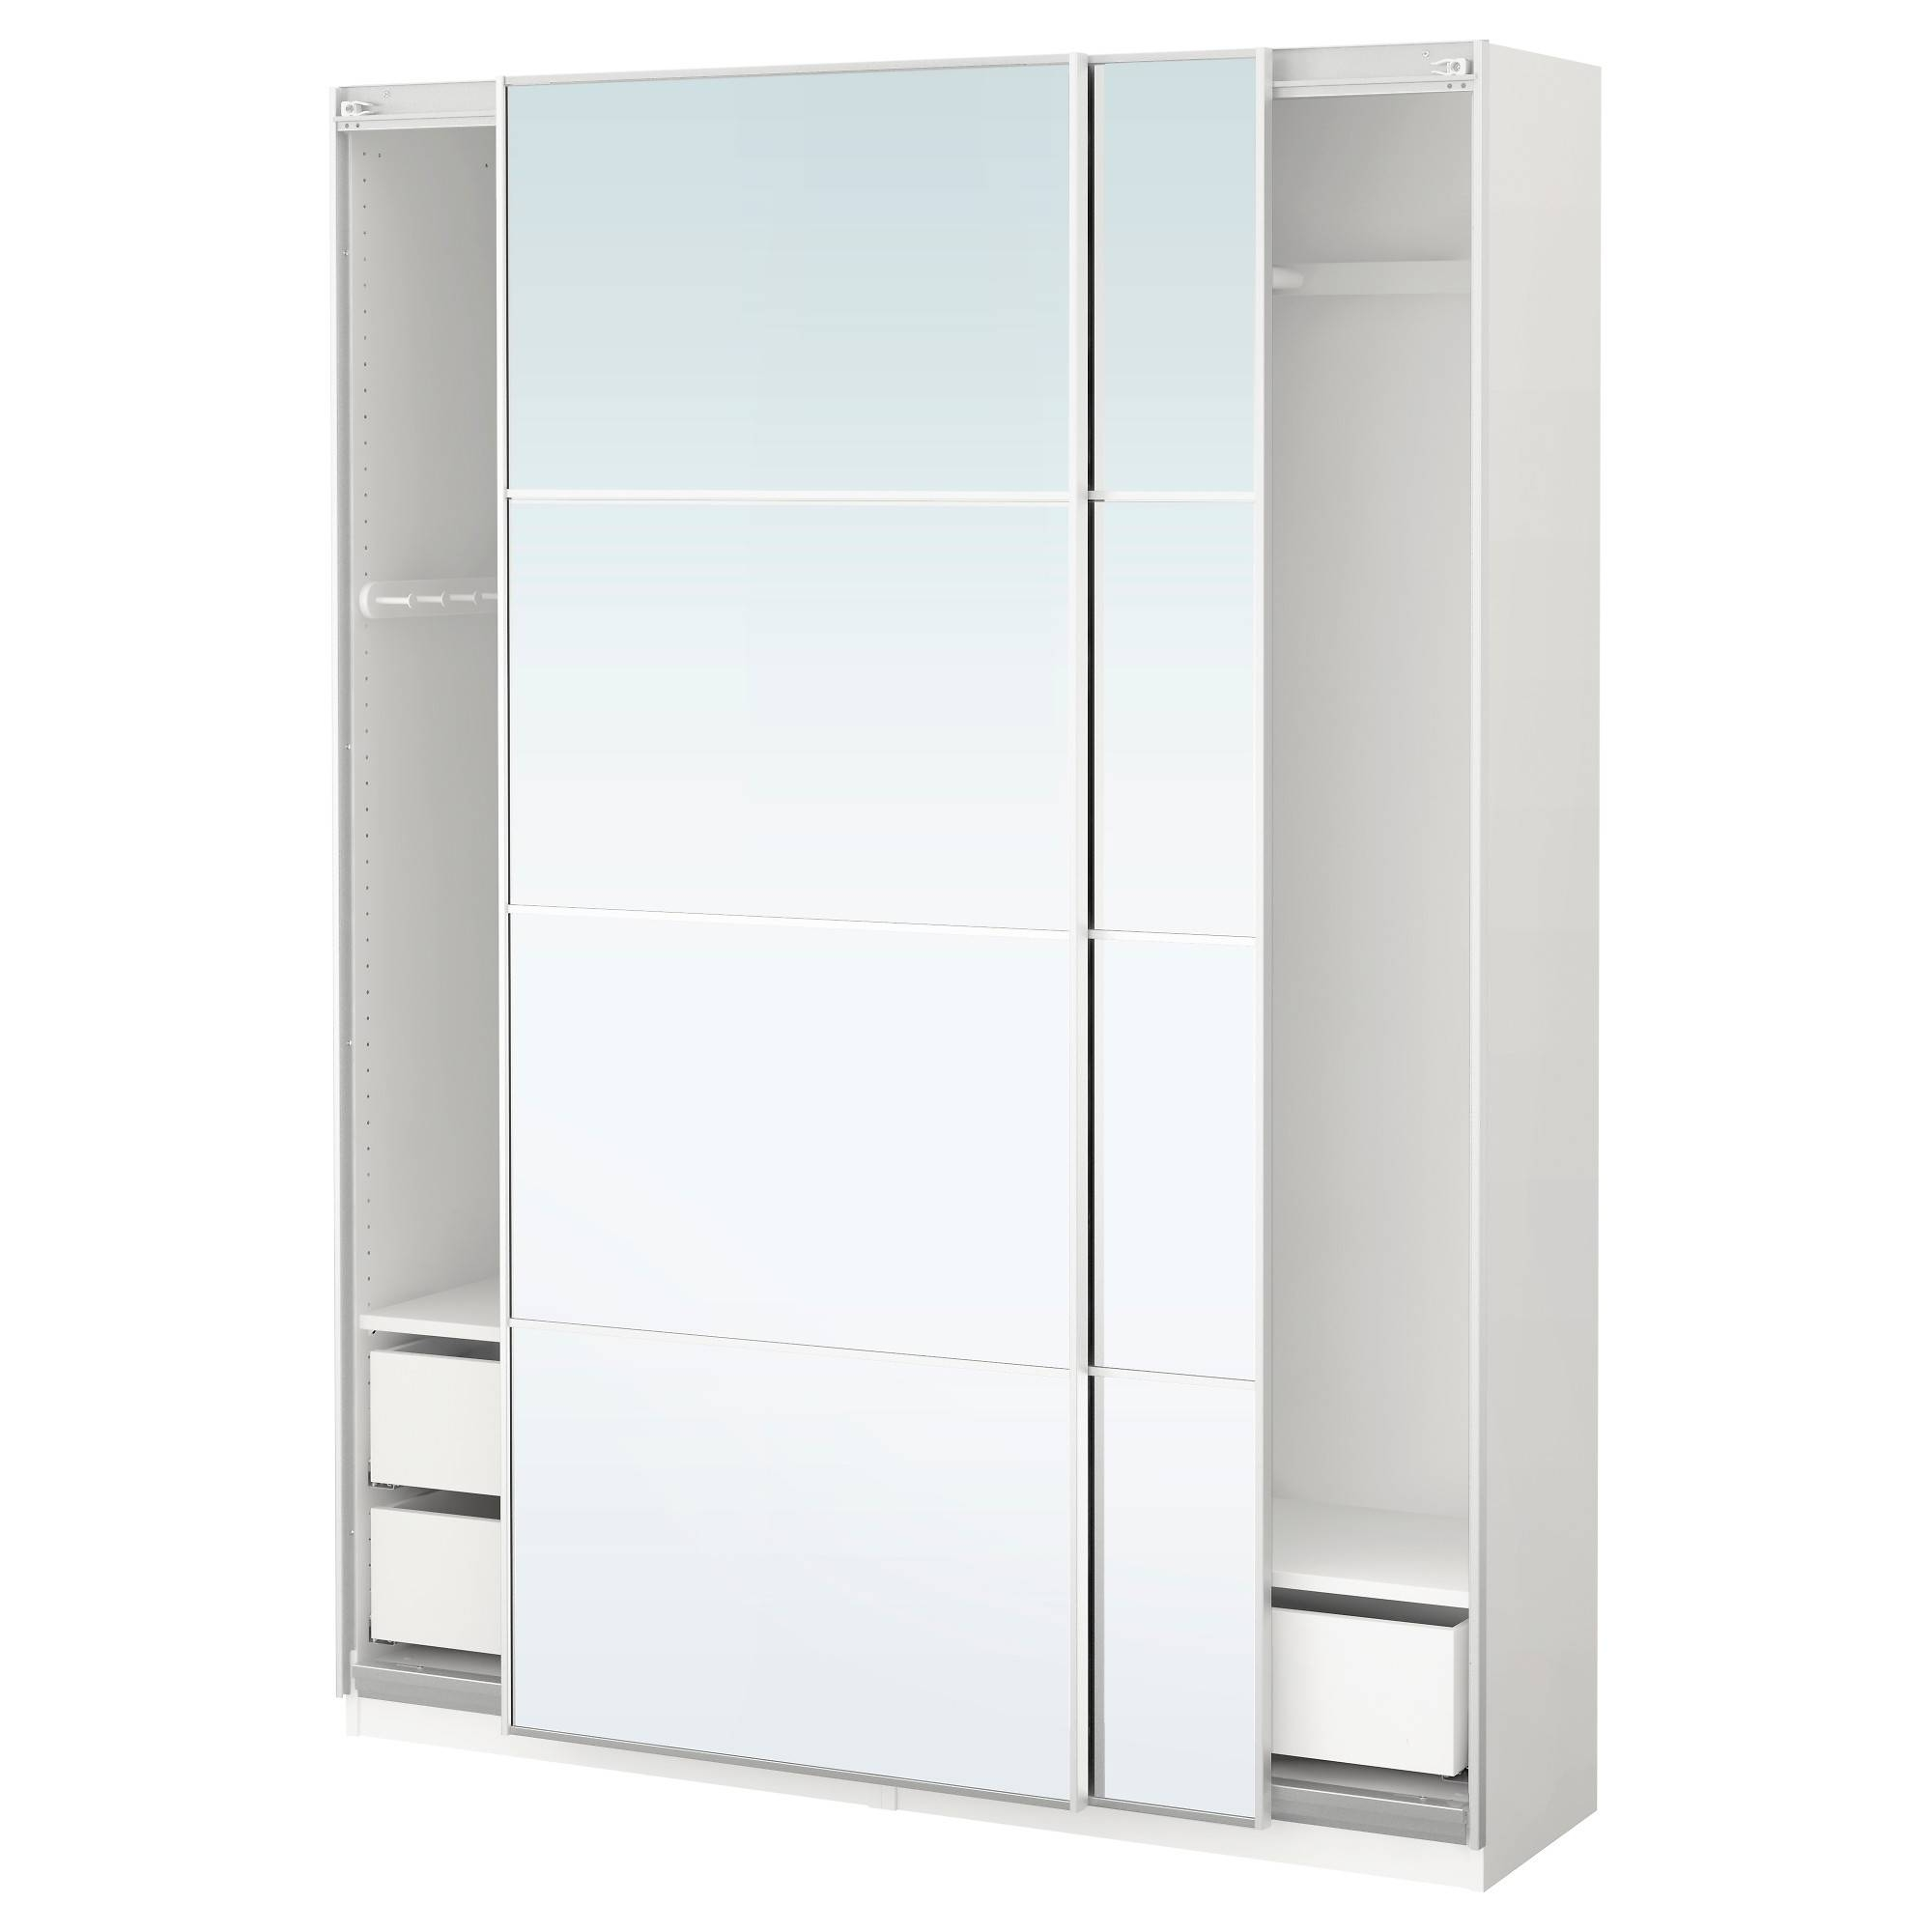 Wardrobes, Armoires & Closets - Ikea pertaining to 1 Door Mirrored Wardrobes (Image 13 of 15)